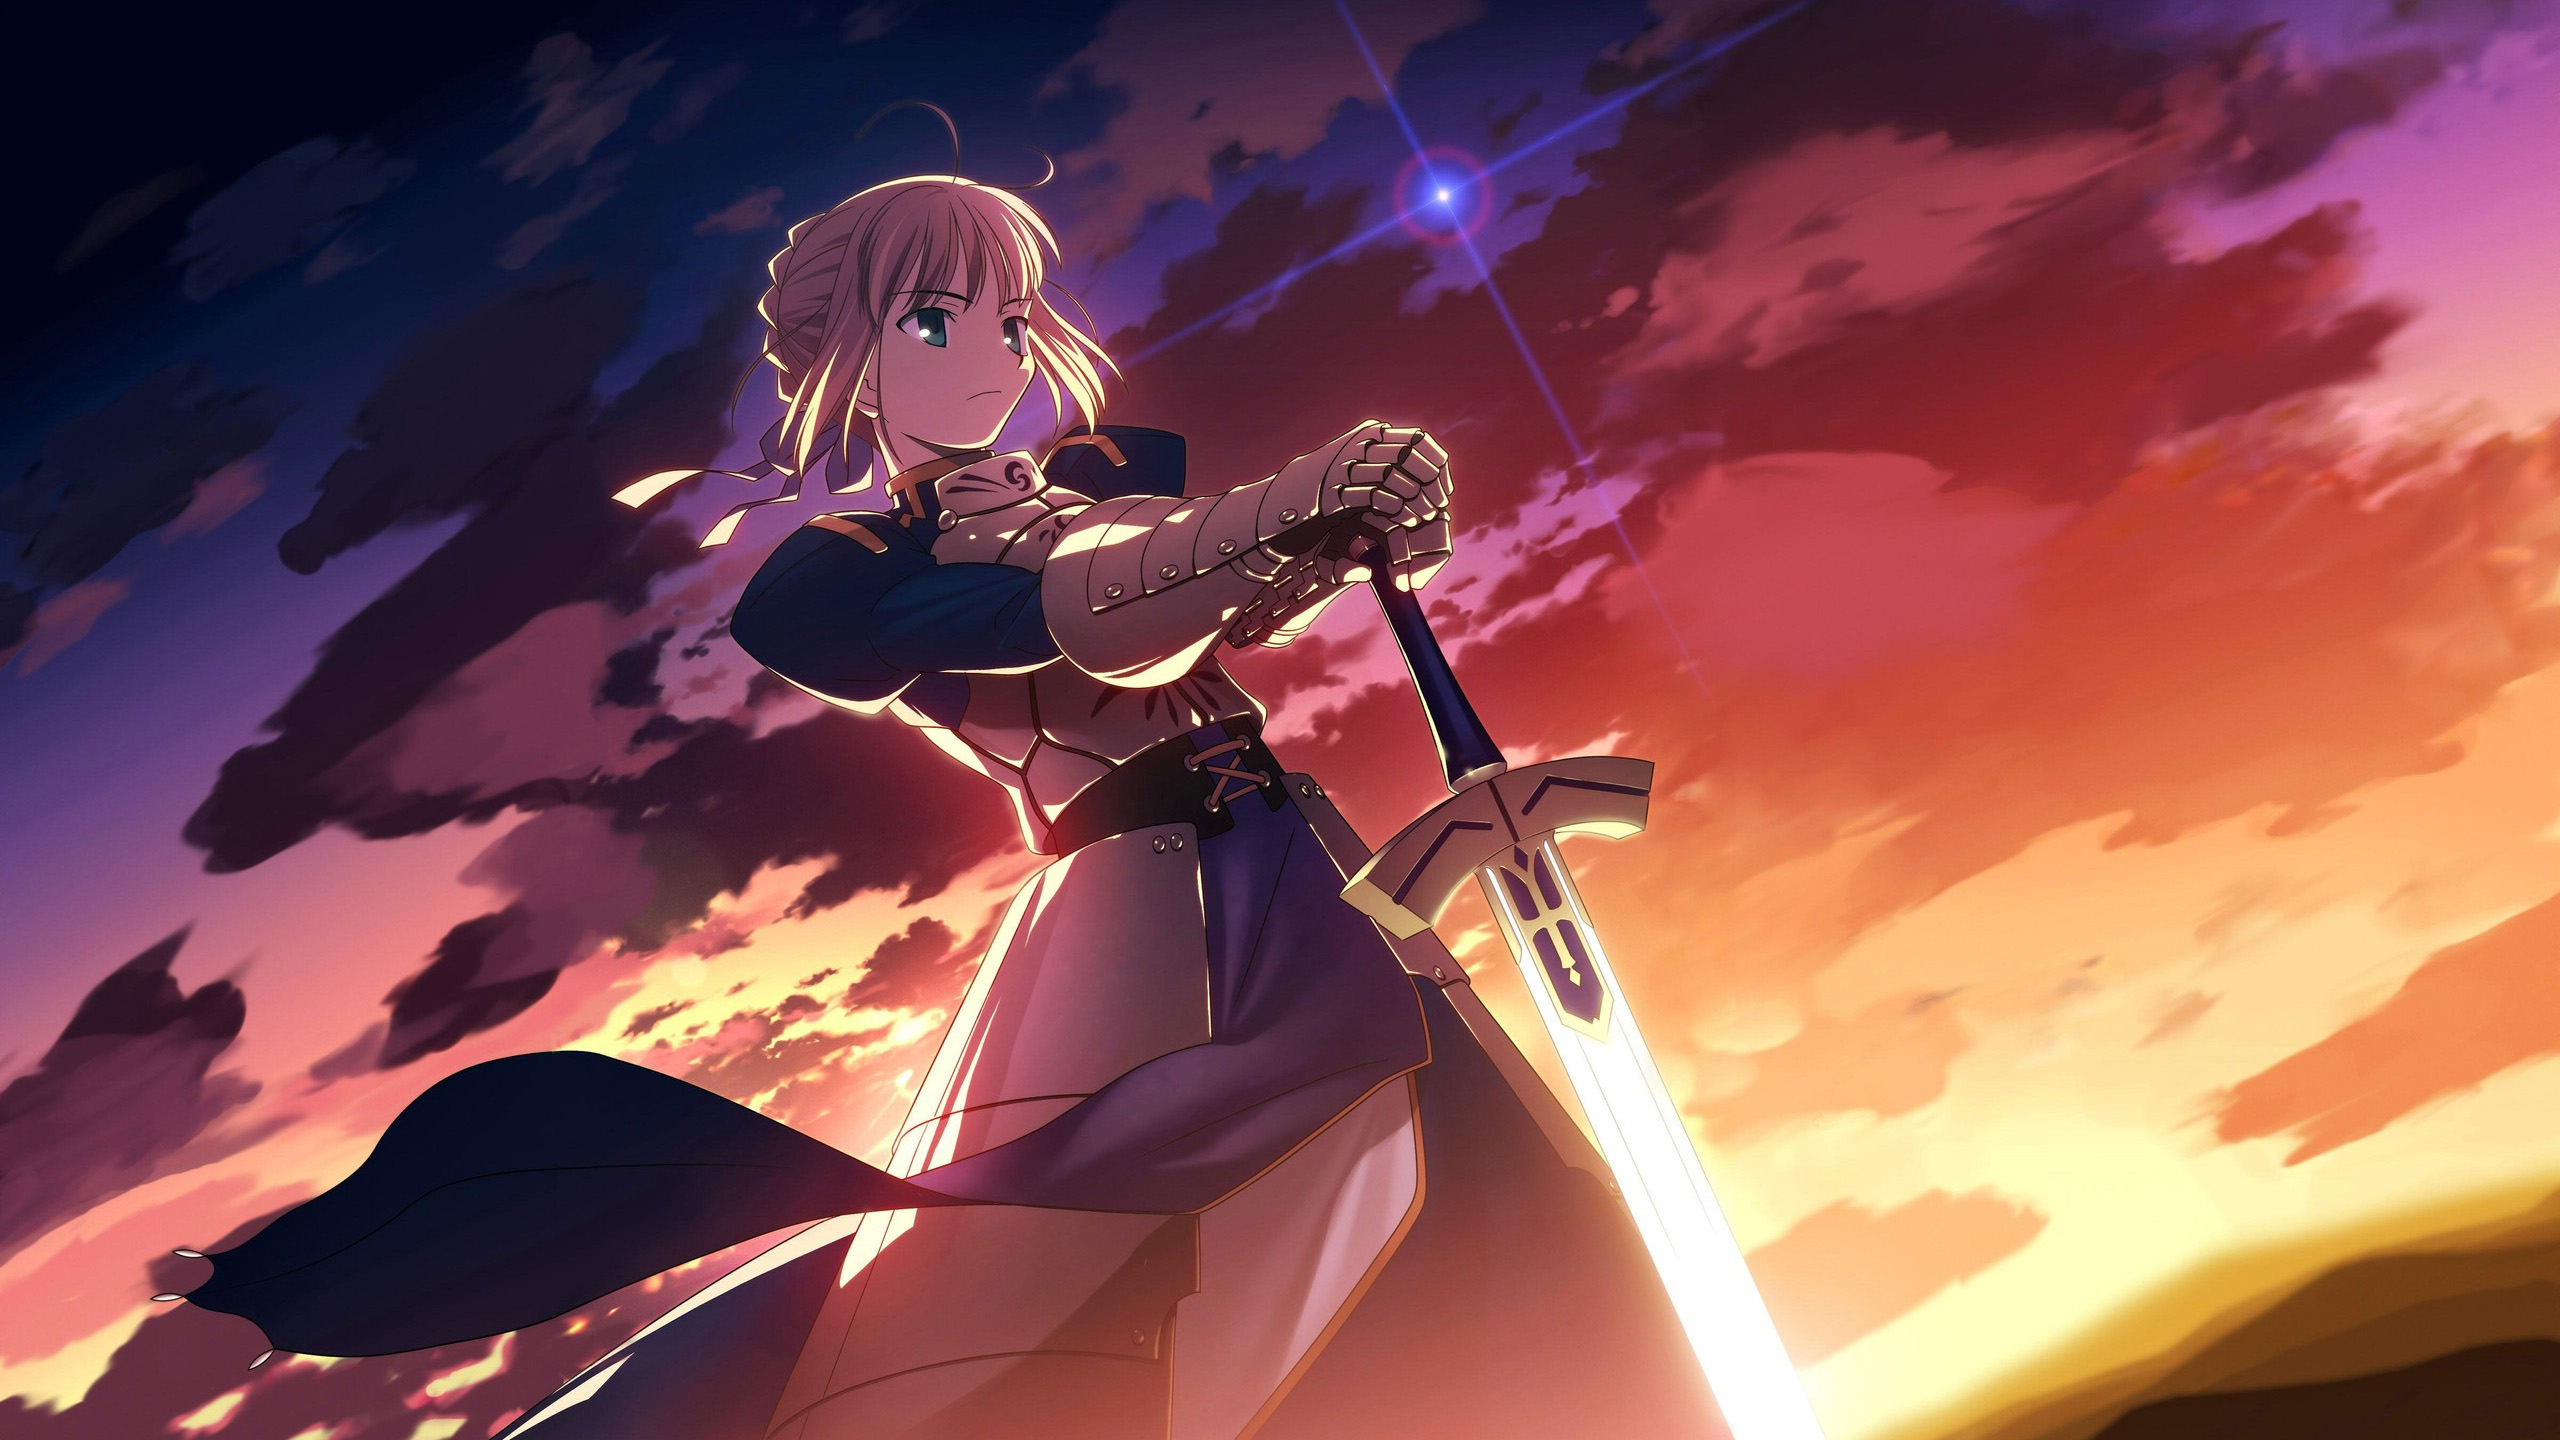 Fate Stay Night Saber3352617298 - Fate Stay Night Saber - Stay, Soryu, Saber, Night, Fate